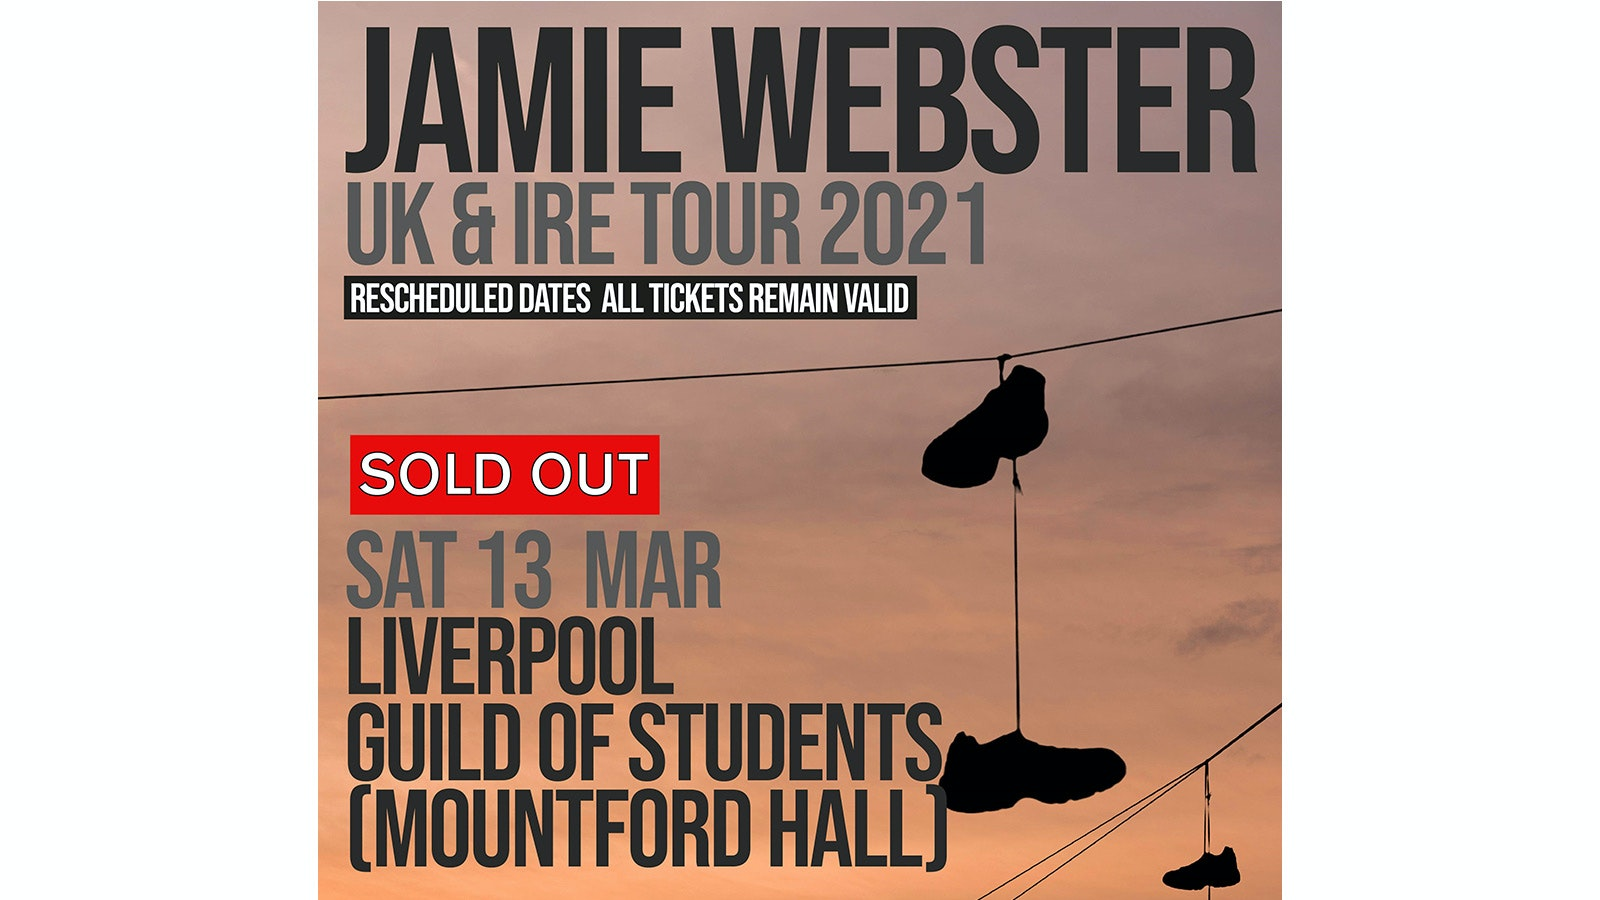 Jamie Webster at Liverpool Guild Sold Out